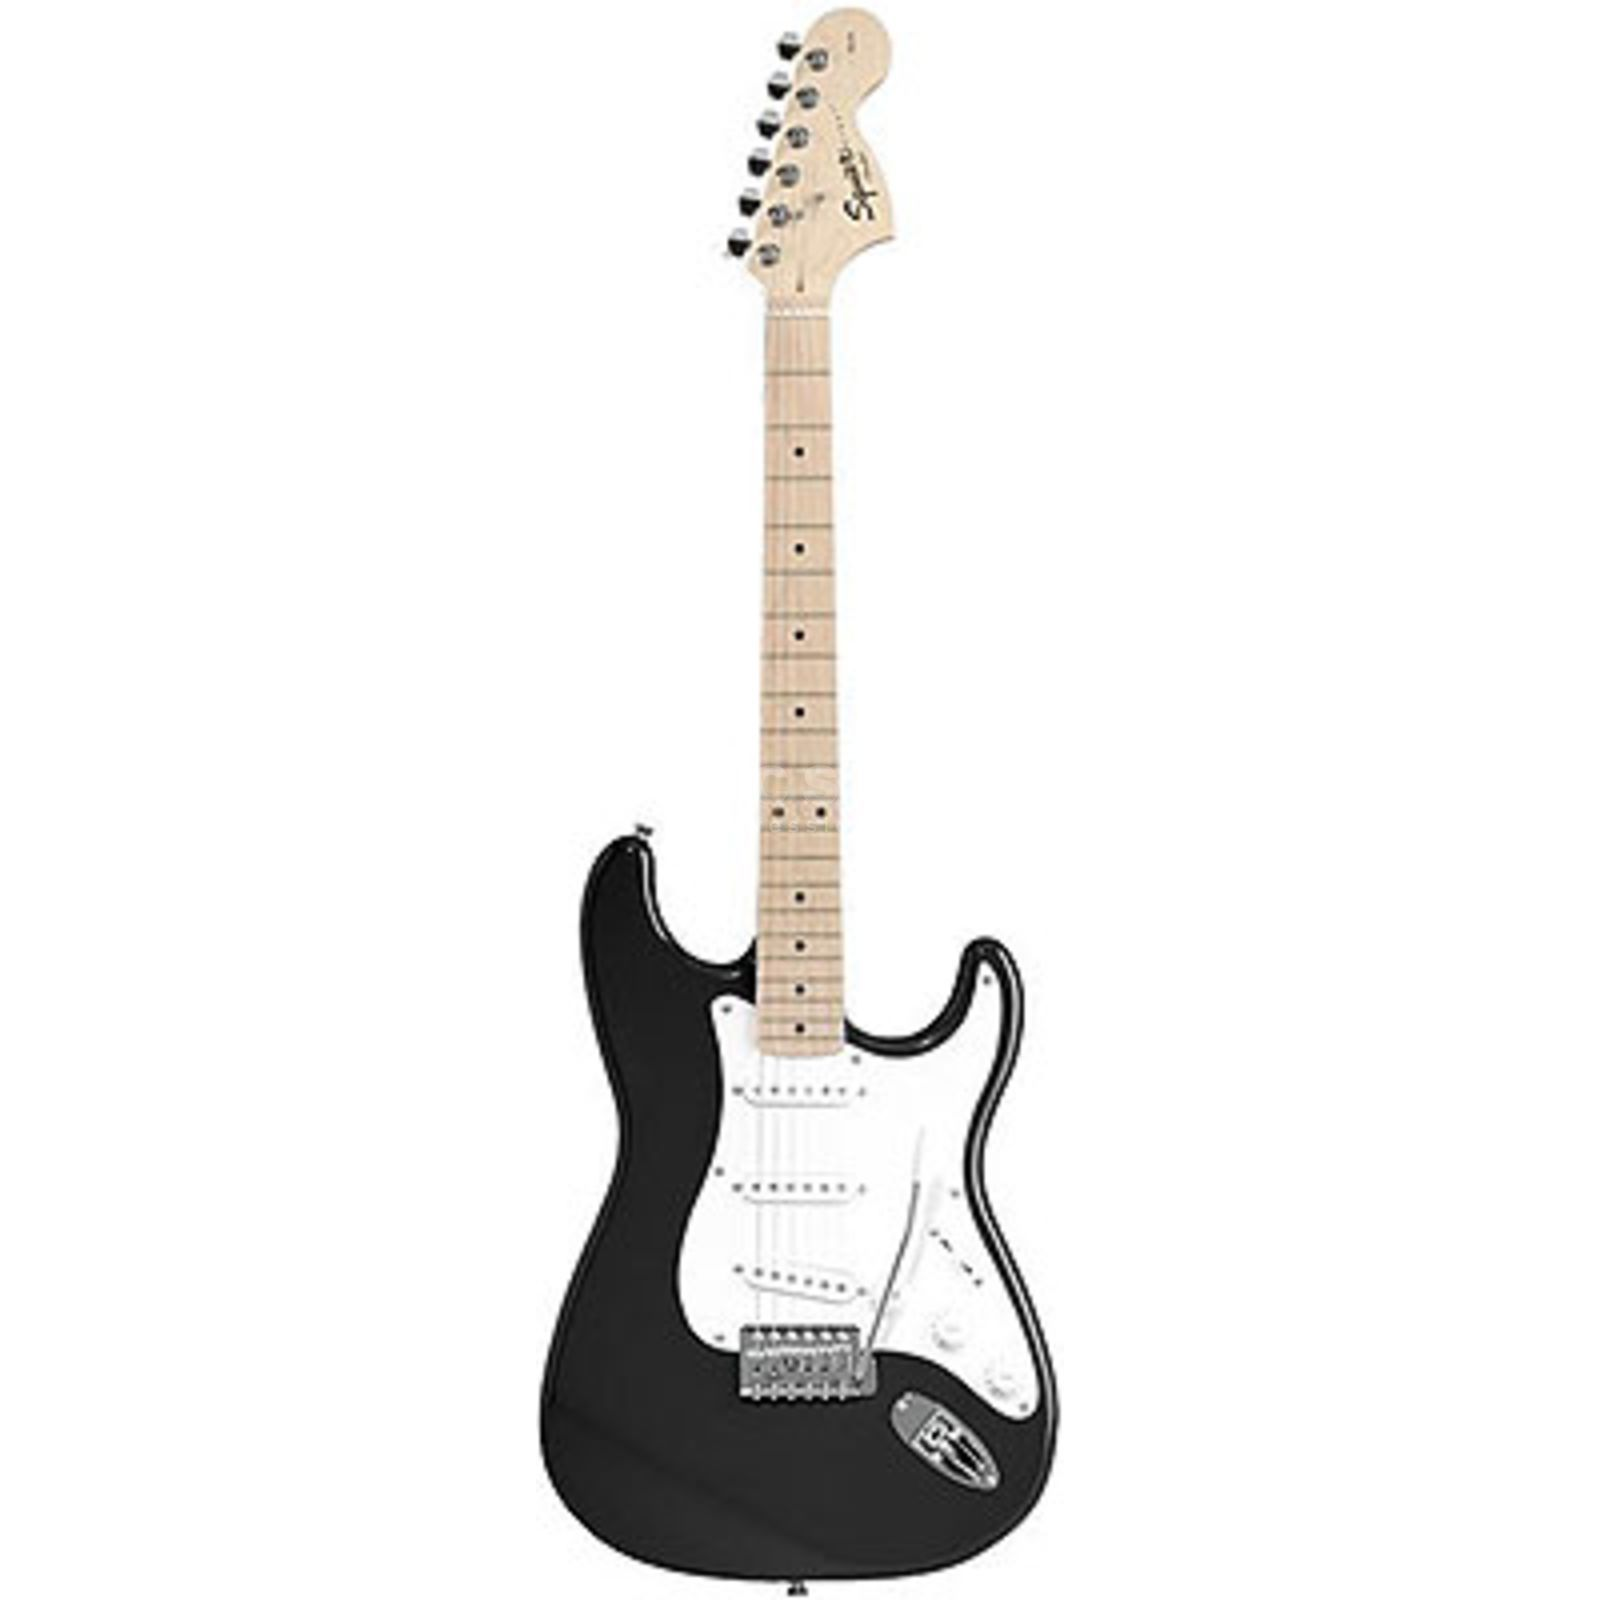 Squier by Fender Affinity Series Stratocaster MN Black Produktbild